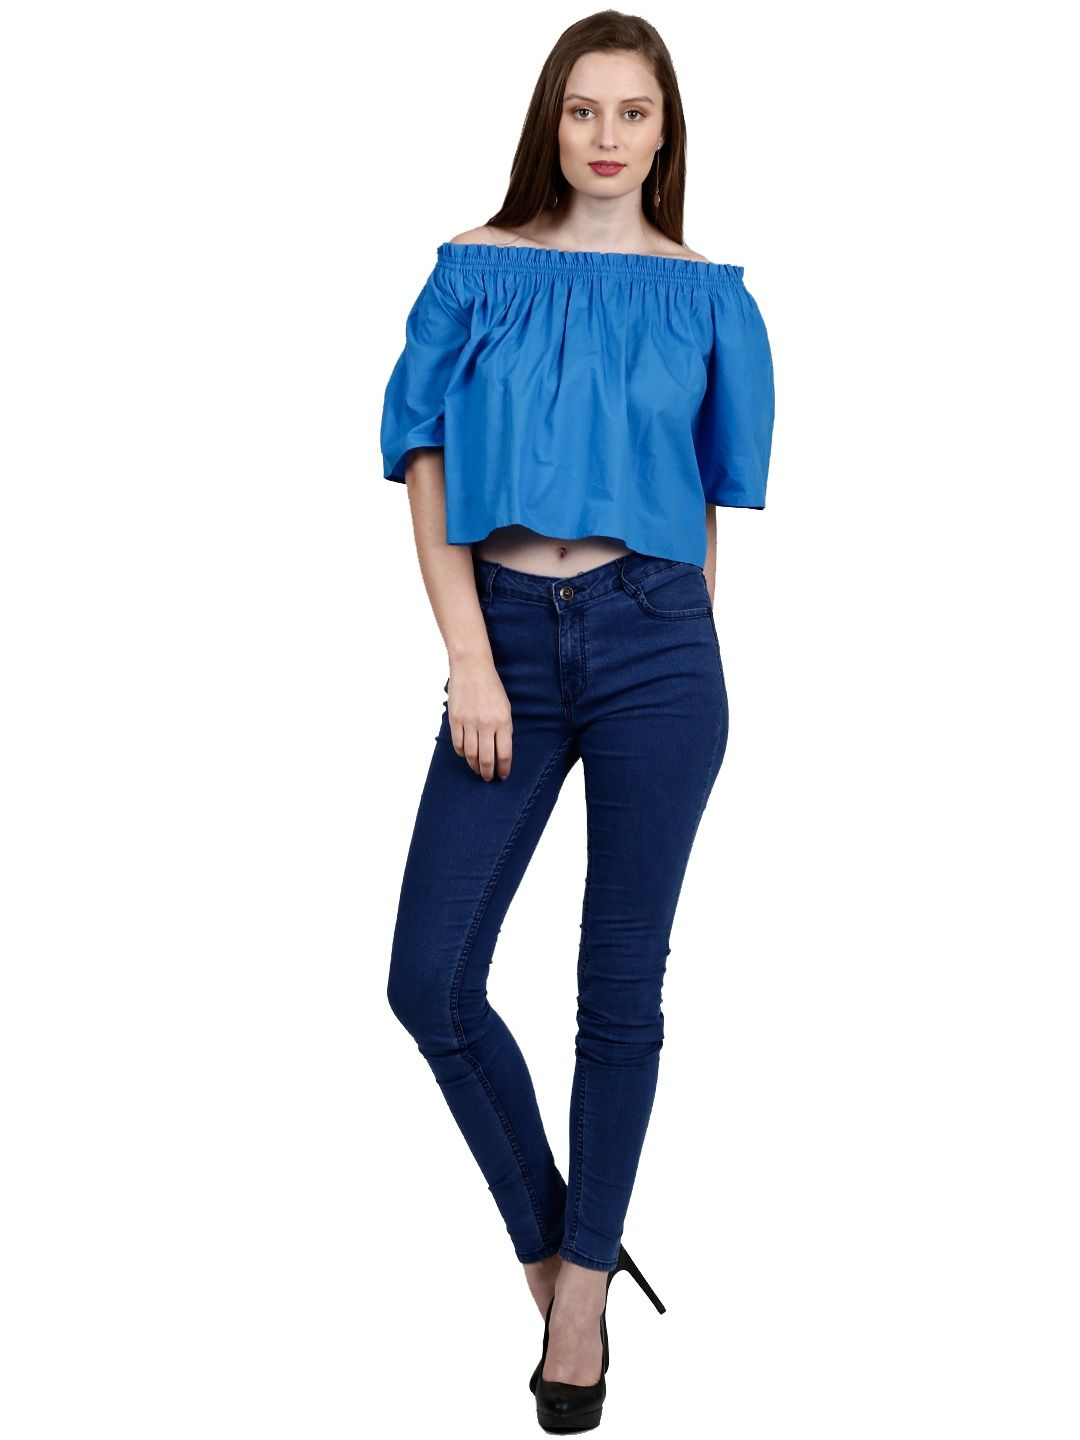 1dac5d4c41f54 Label Ritu Kumar Shirts Tops and Crop Tops   Buy Label Ritu Kumar ...